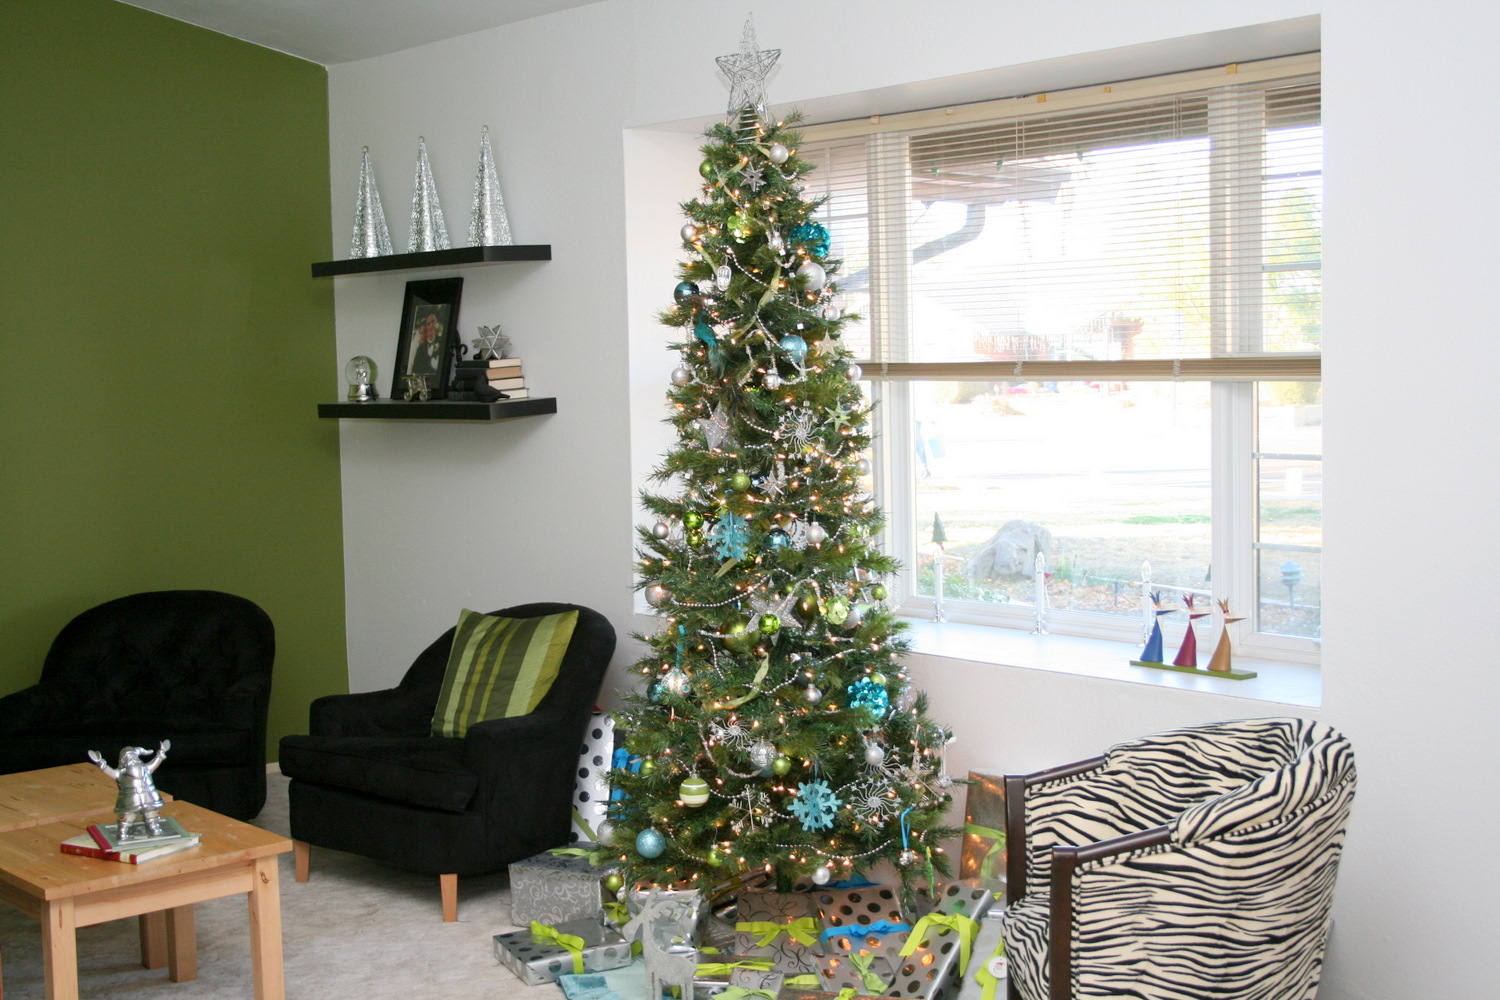 Decorating tips for a modern merry christmas - Modern christmas tree ideas ...